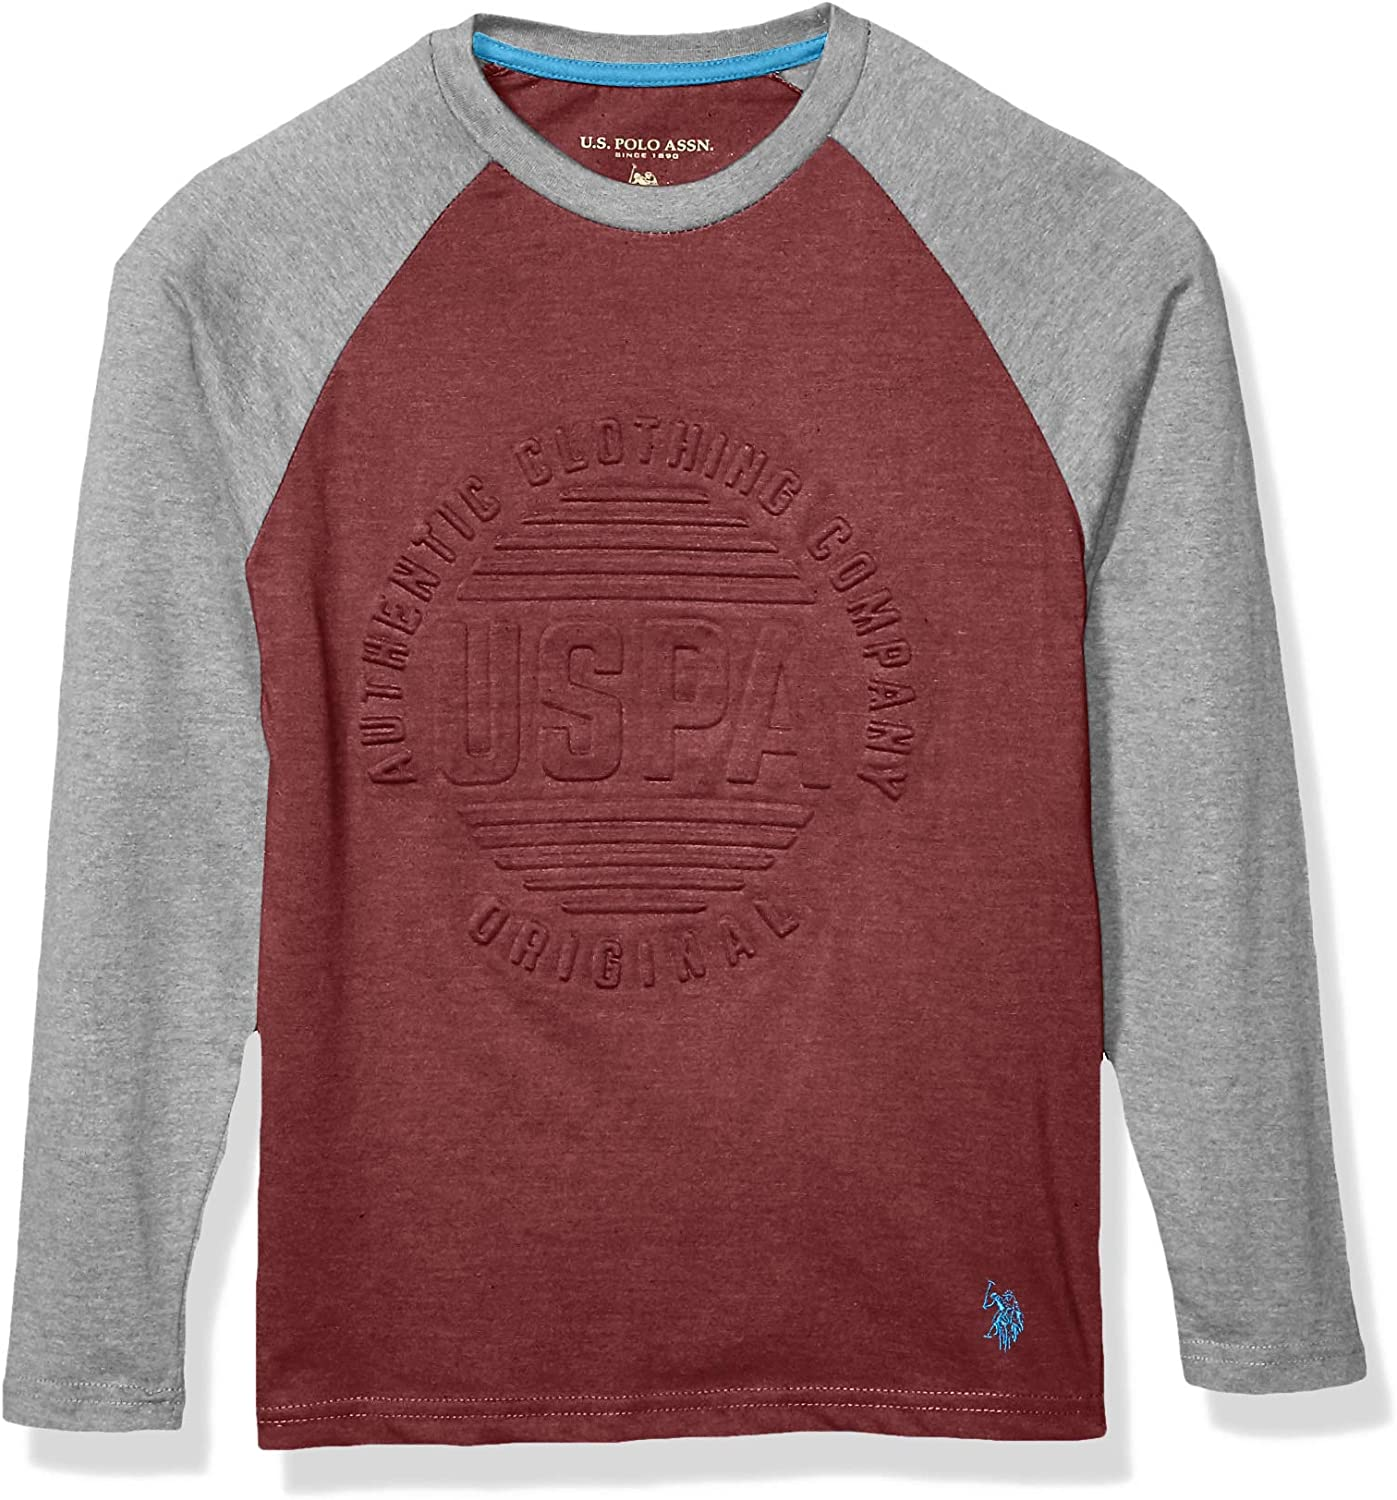 U.S. Polo Assn. Boys' Long Sleeve Embossed Graphic T-Shirt